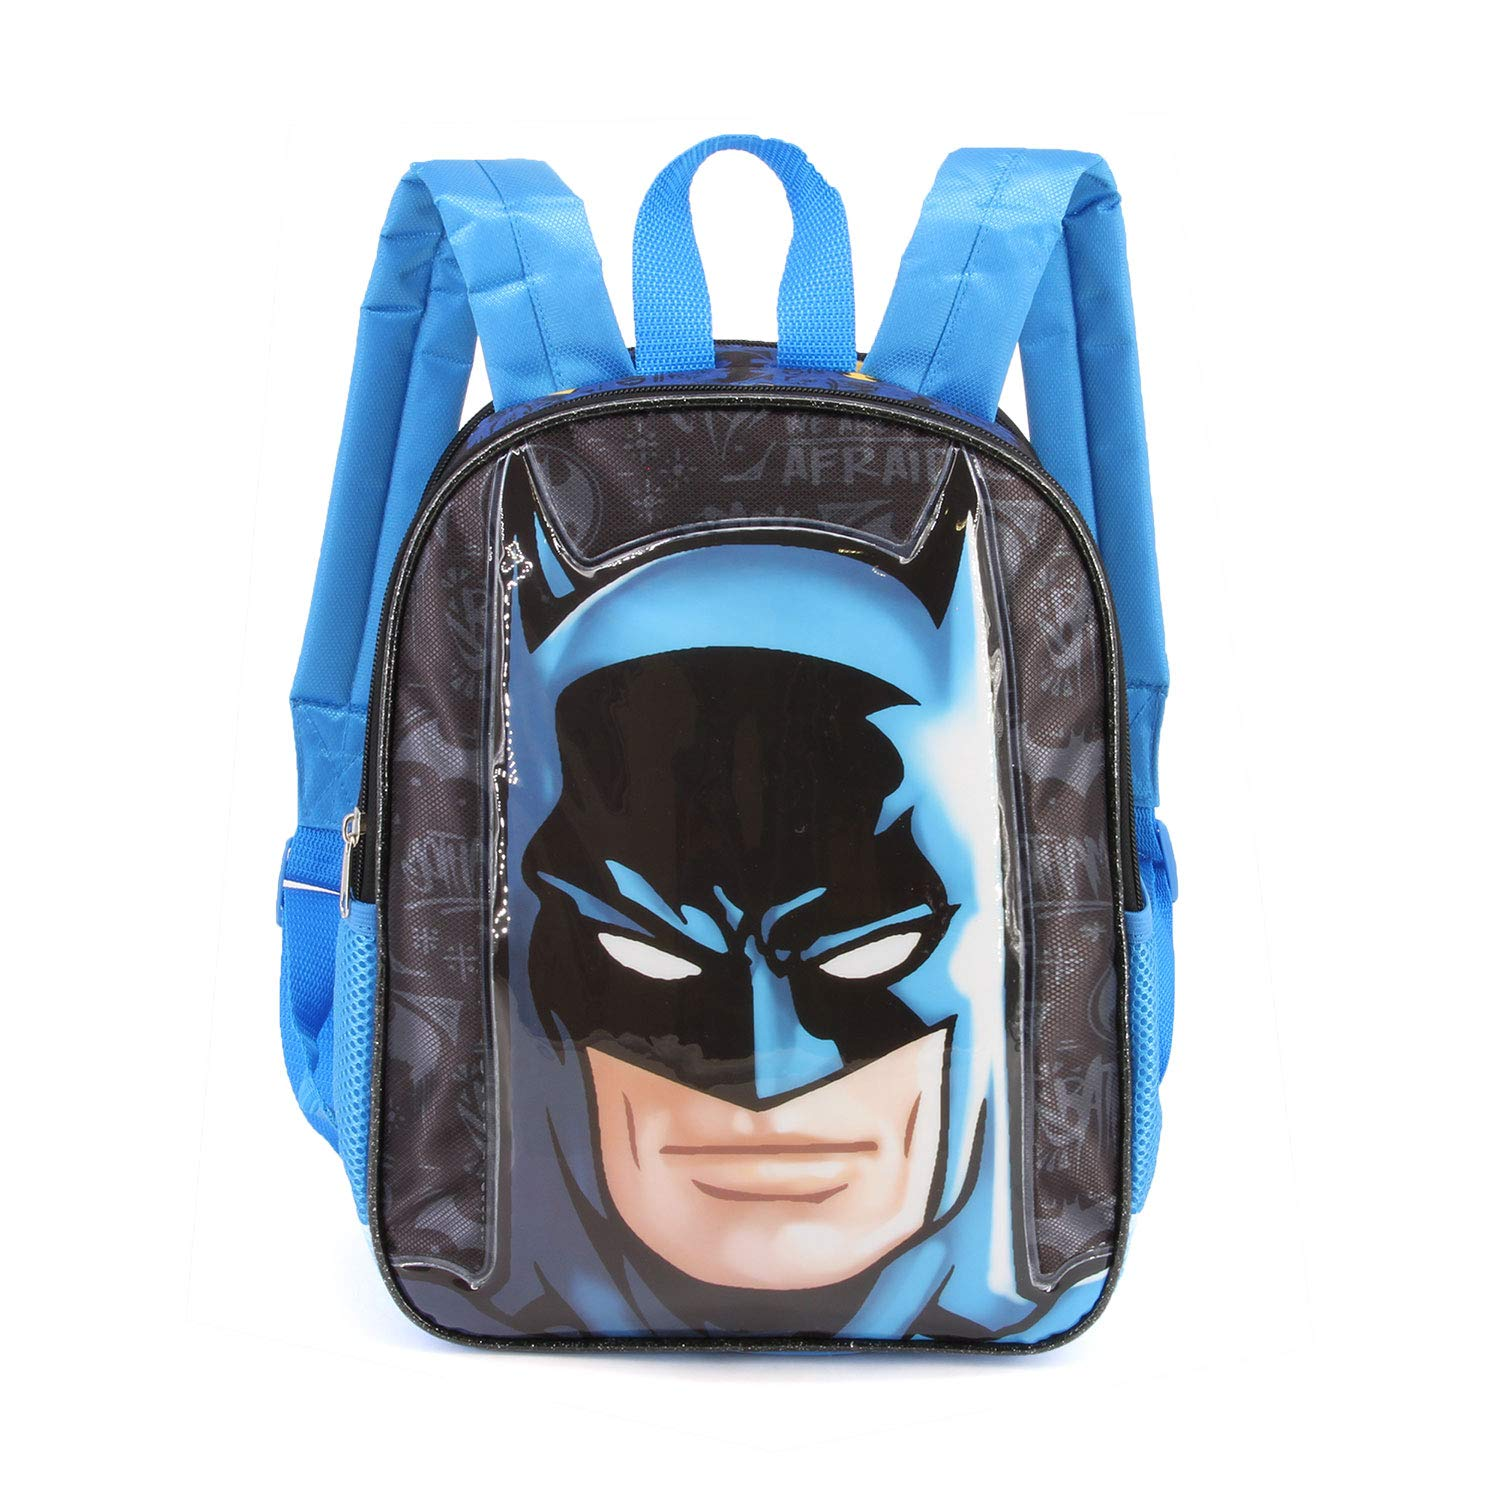 ZAINO Zainetto Reversibile - BATMAN